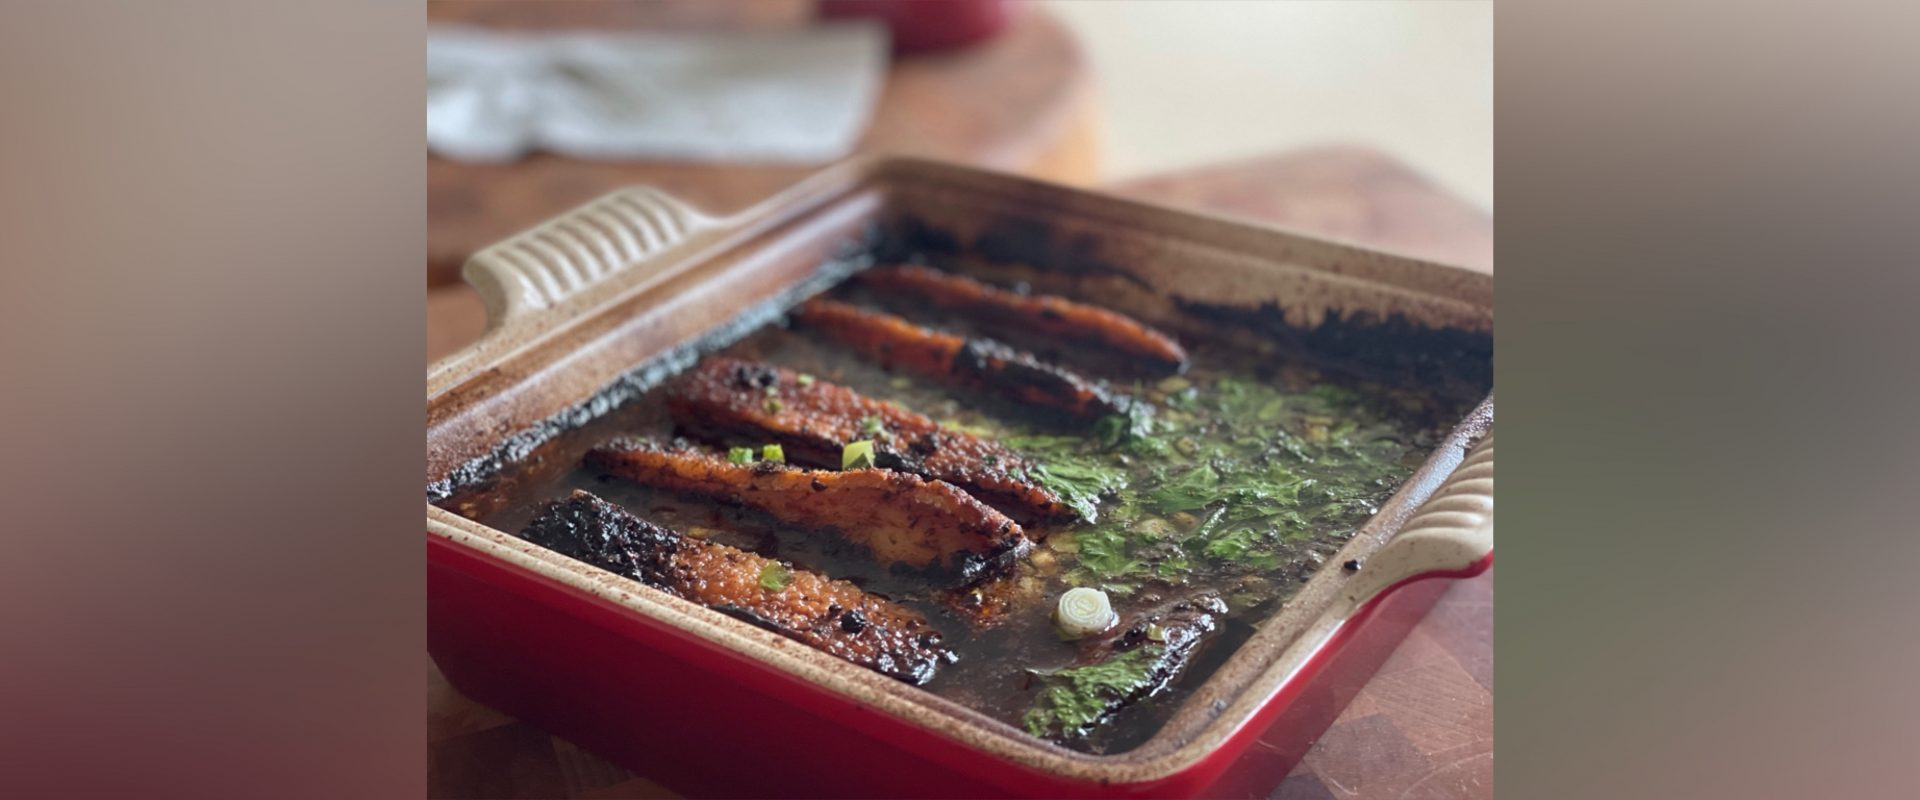 Permalink to: Slow-Braised Pork Belly with Soy, Ginger and Garlic